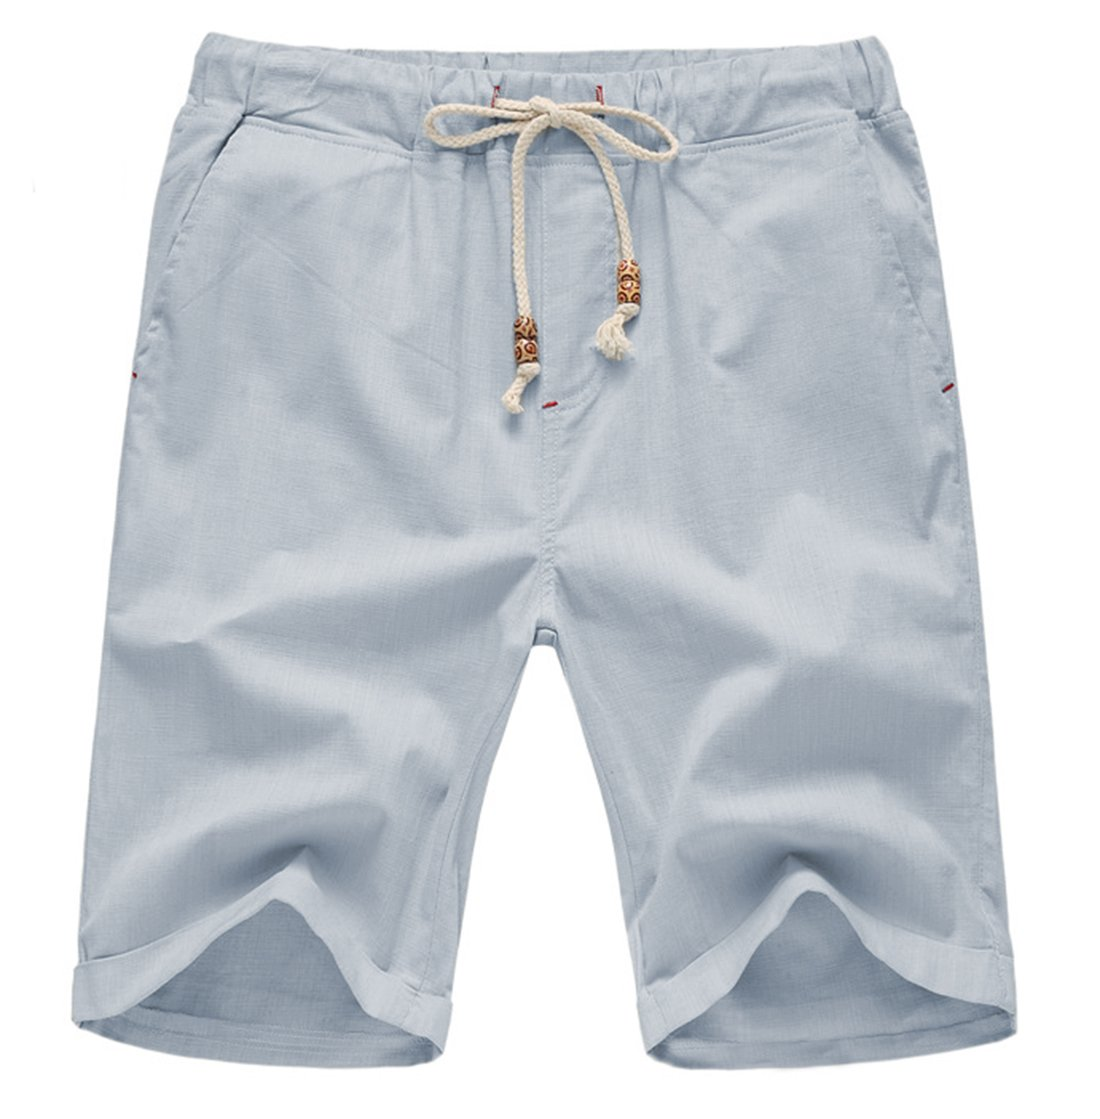 Our Precious Men's Linen and Cotton Casual Classic Fit Short Light Grey L by Our Precious